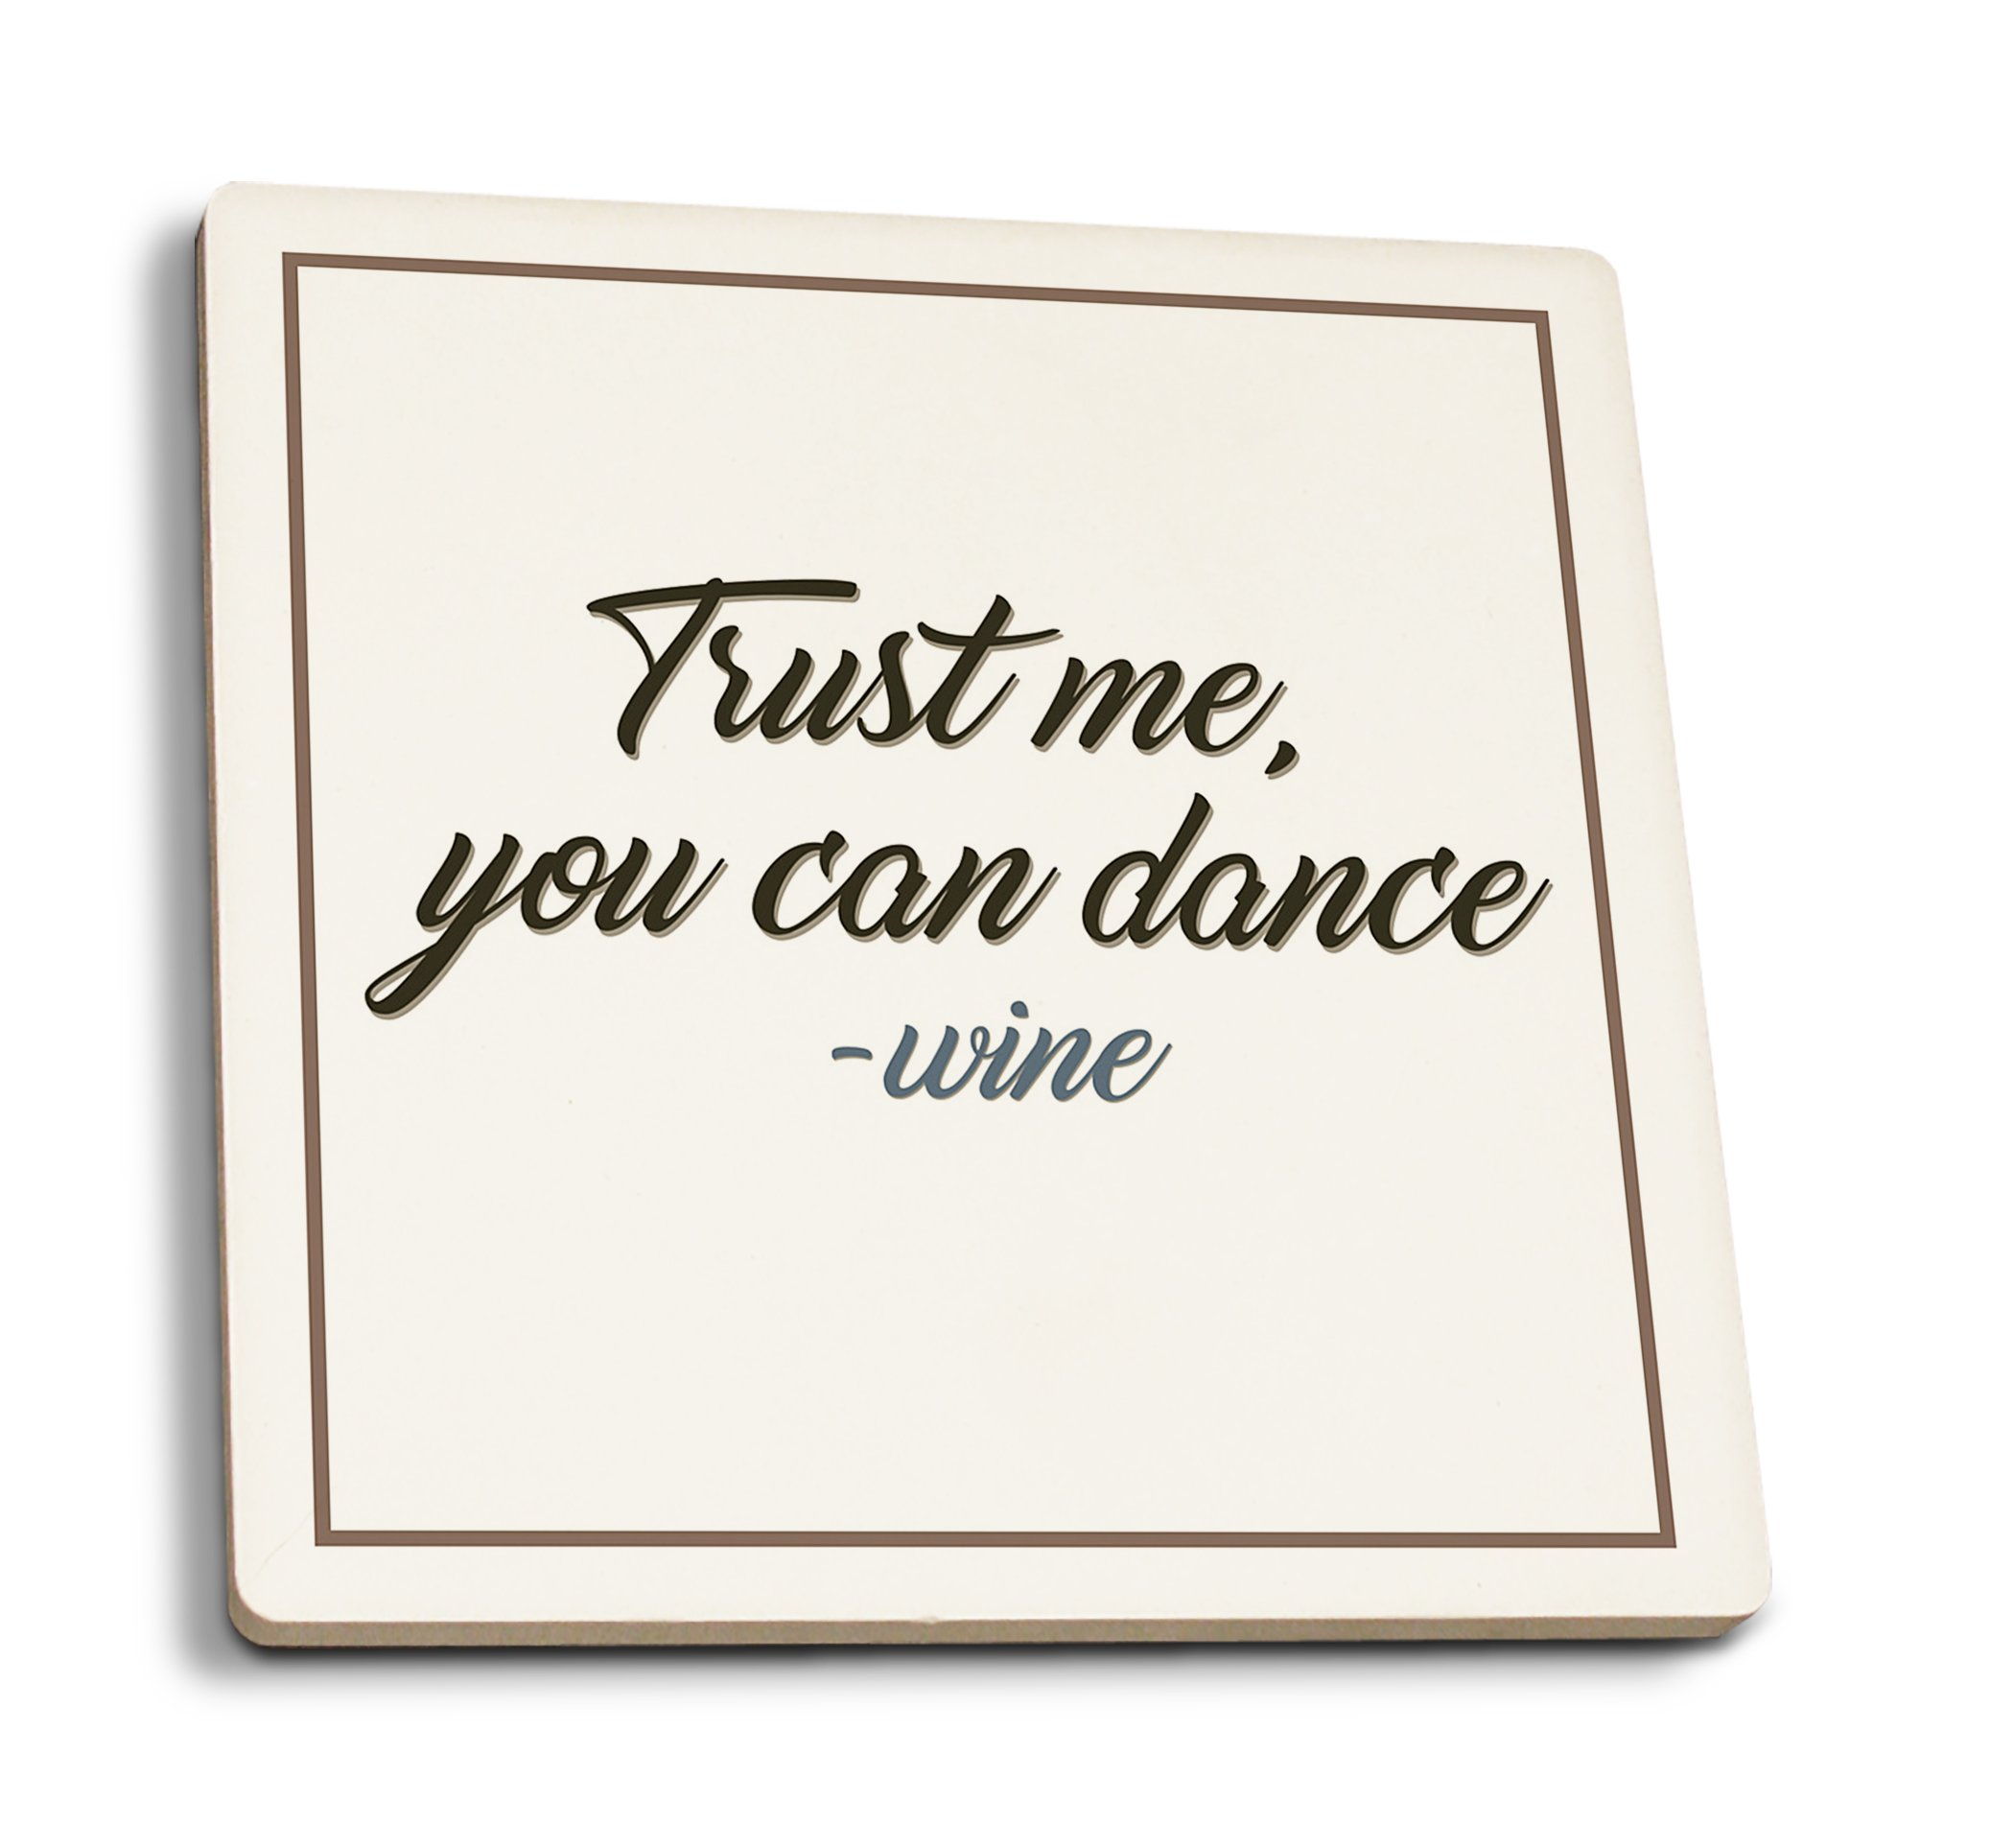 Lantern Press Quote - Trust Me, You Can Dance - Wine Saying (Set of 4 Ceramic Coasters - Cork-backed, Absorbent)